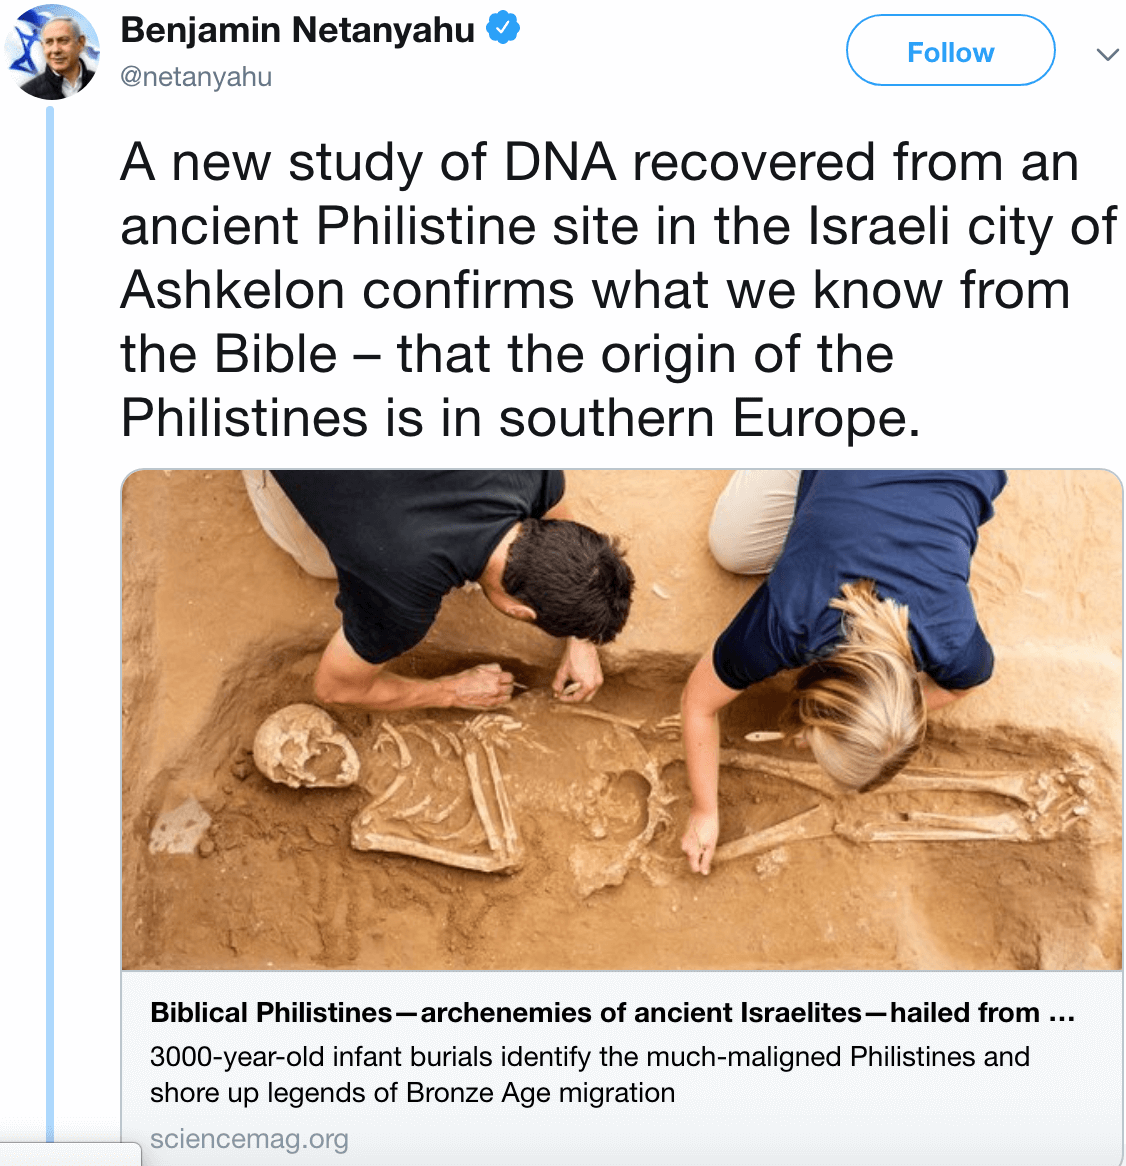 Archaeologists on Twitter tear down Netanyahu's claims that